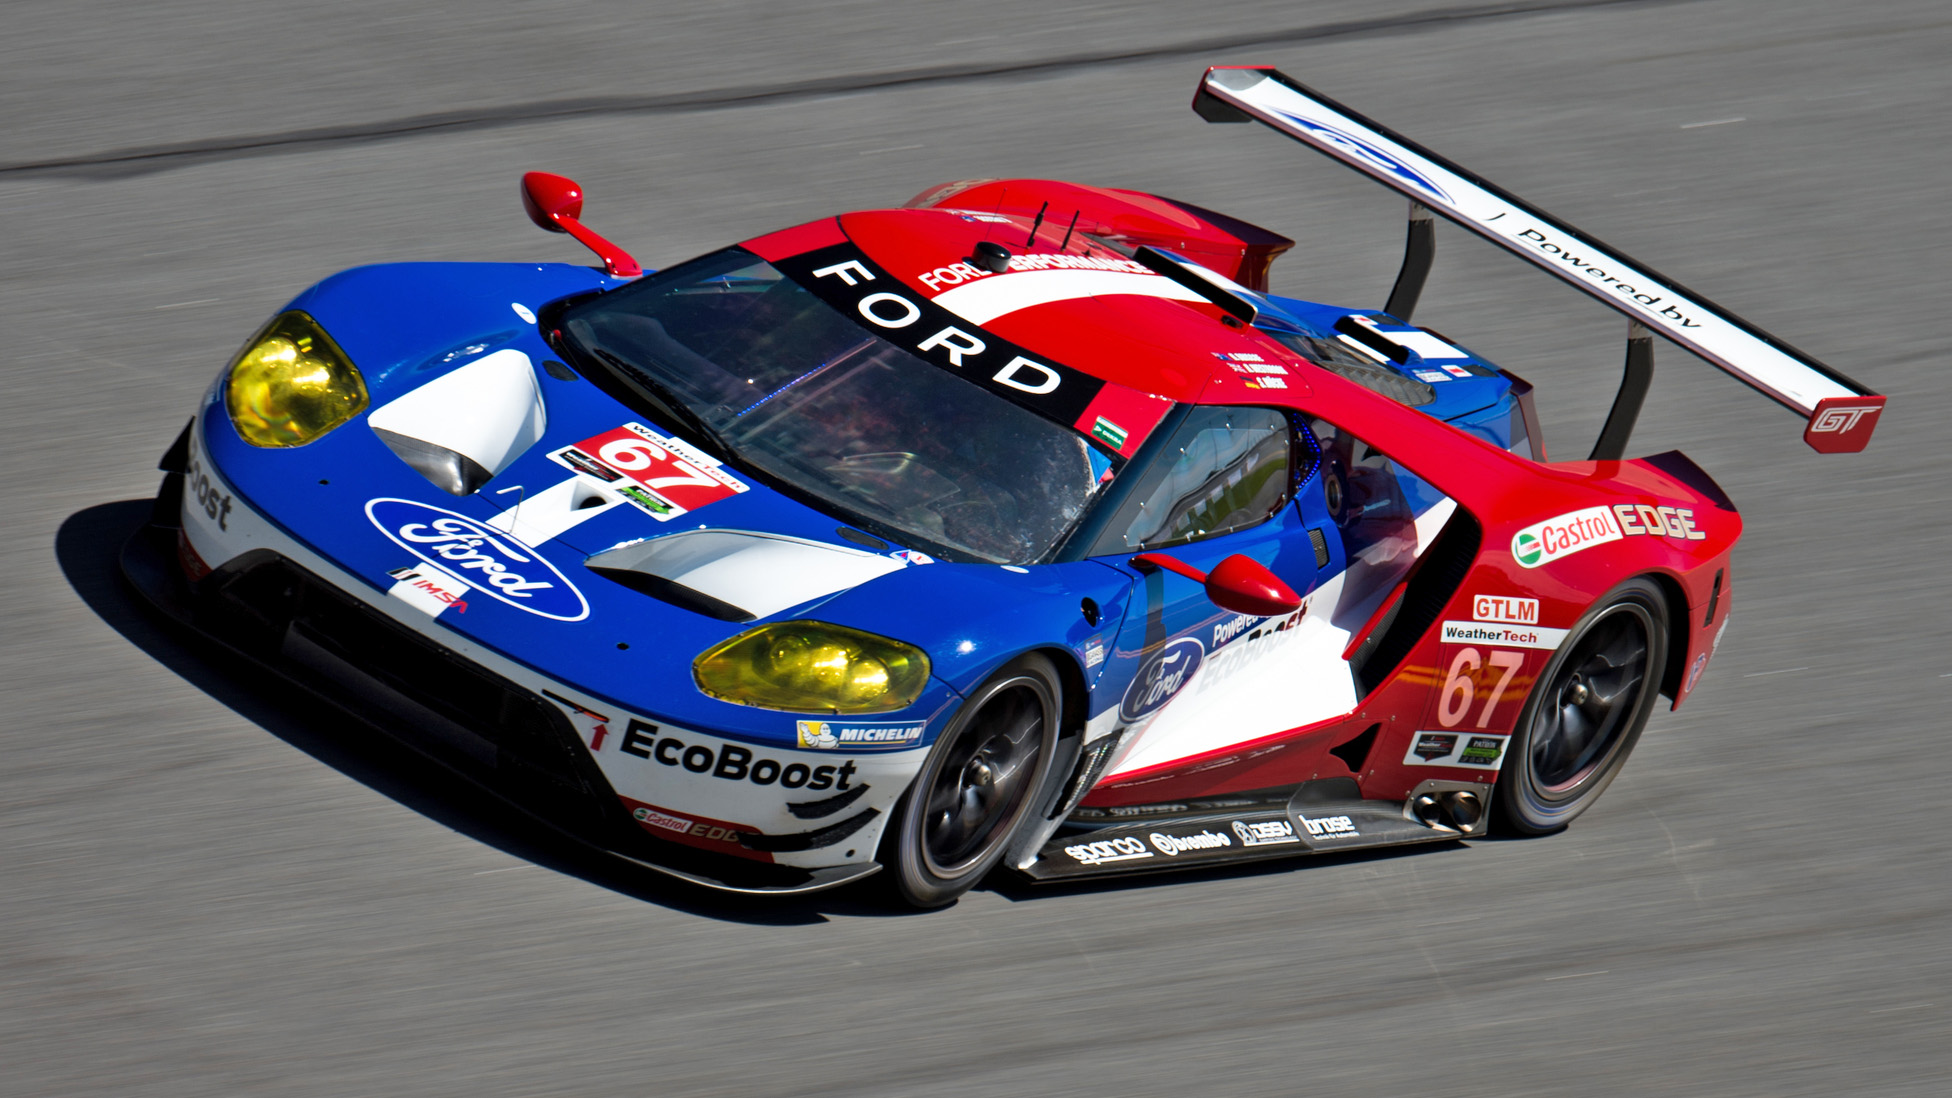 Ford Gt Wins The 24 Hours Of Le Mans Gte Pro Class Moto